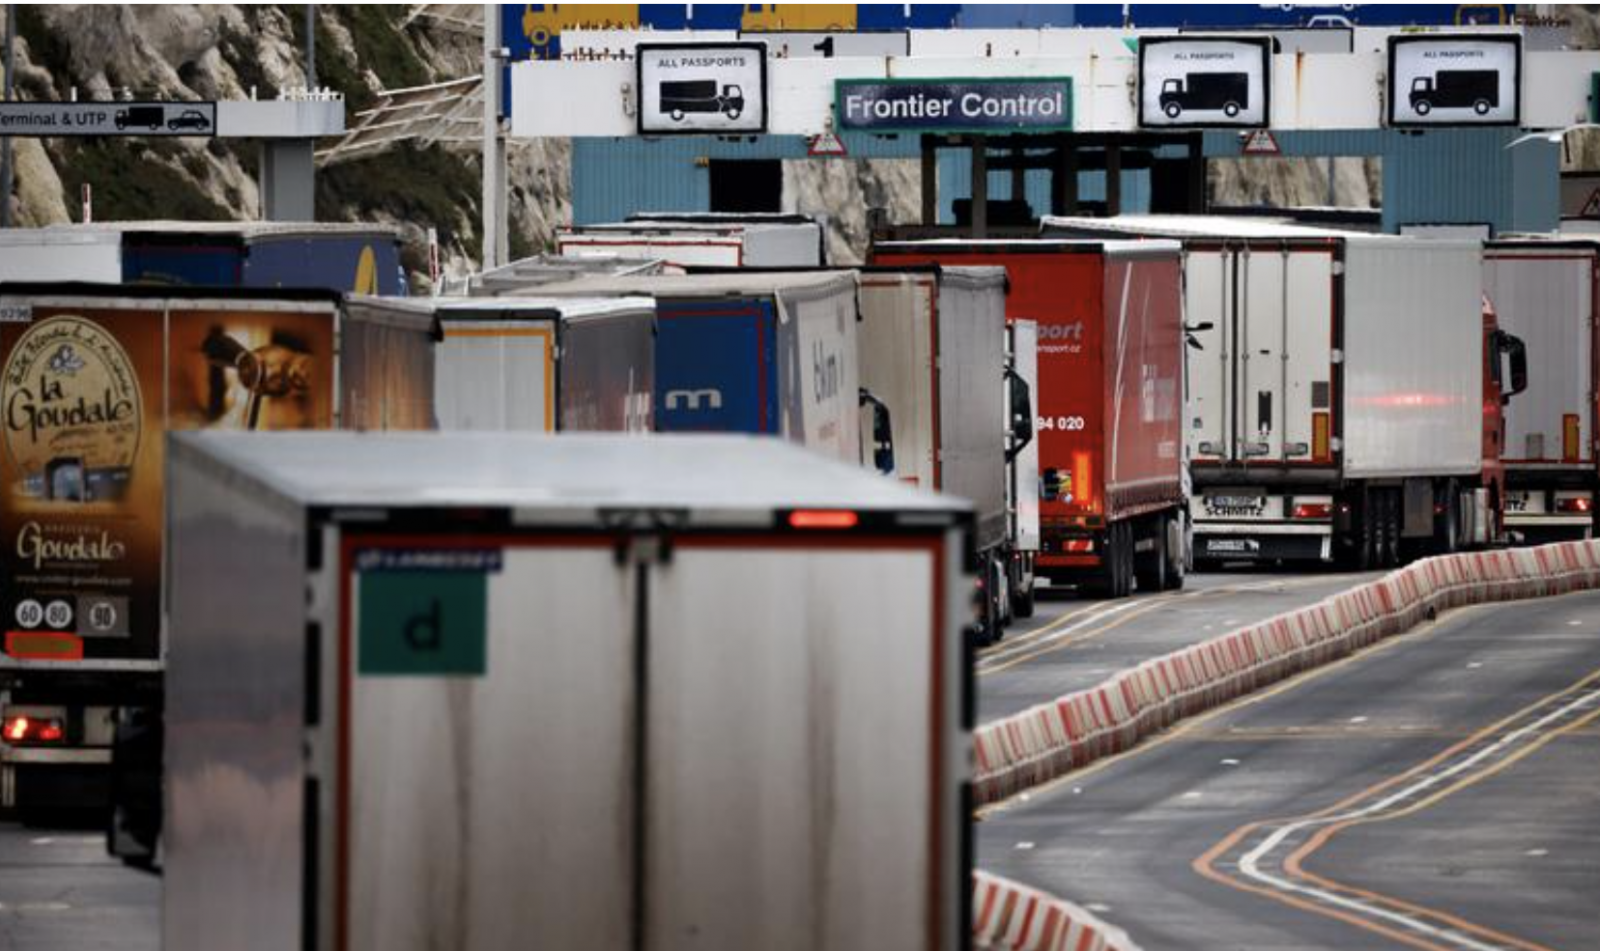 Exports From UK to EU Down 68% Since Brexit Trade Deal, Say Hauliers